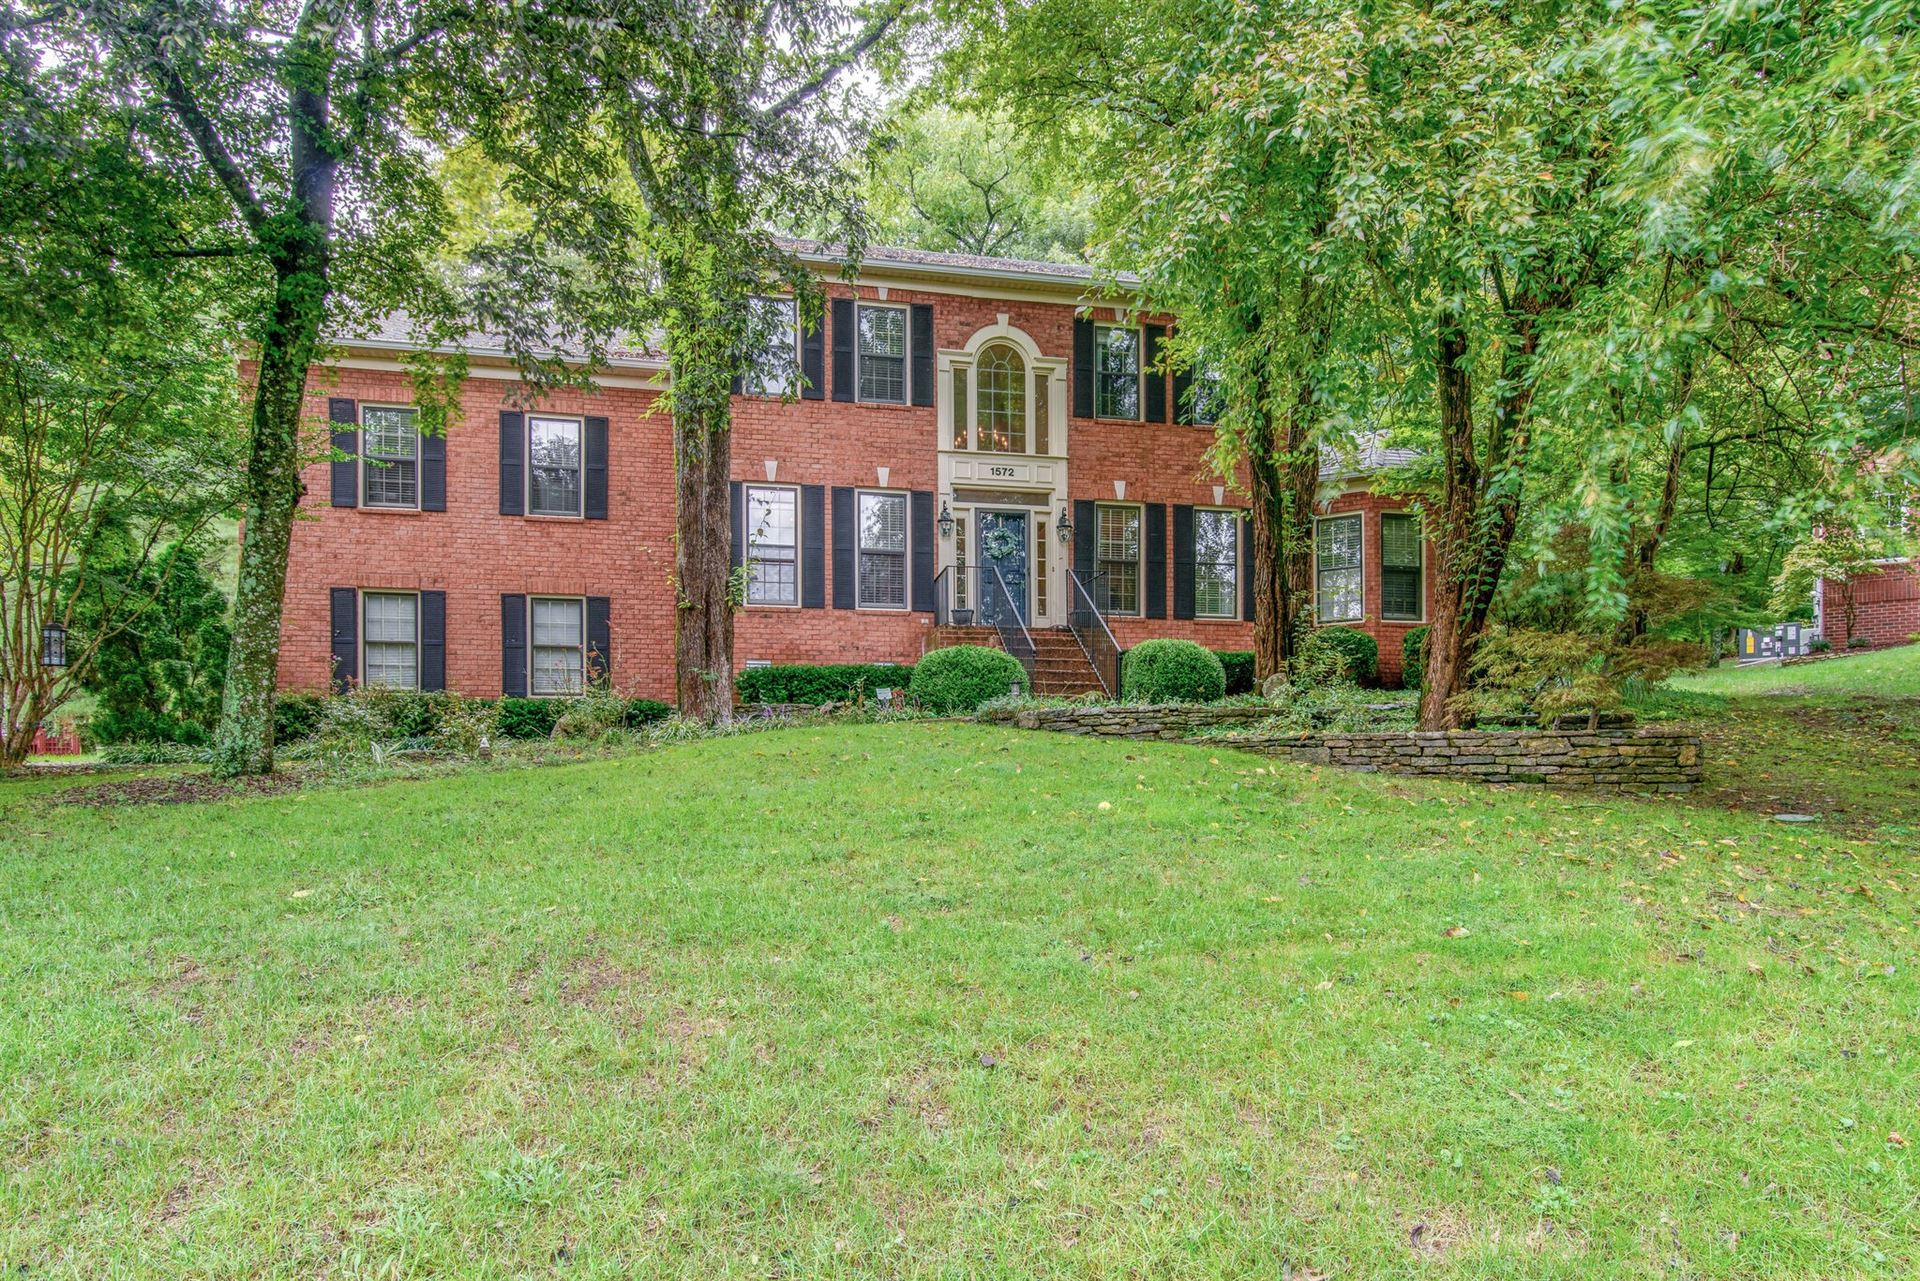 1572 Woodberry Ct, Brentwood, TN 37027 - MLS#: 2293102